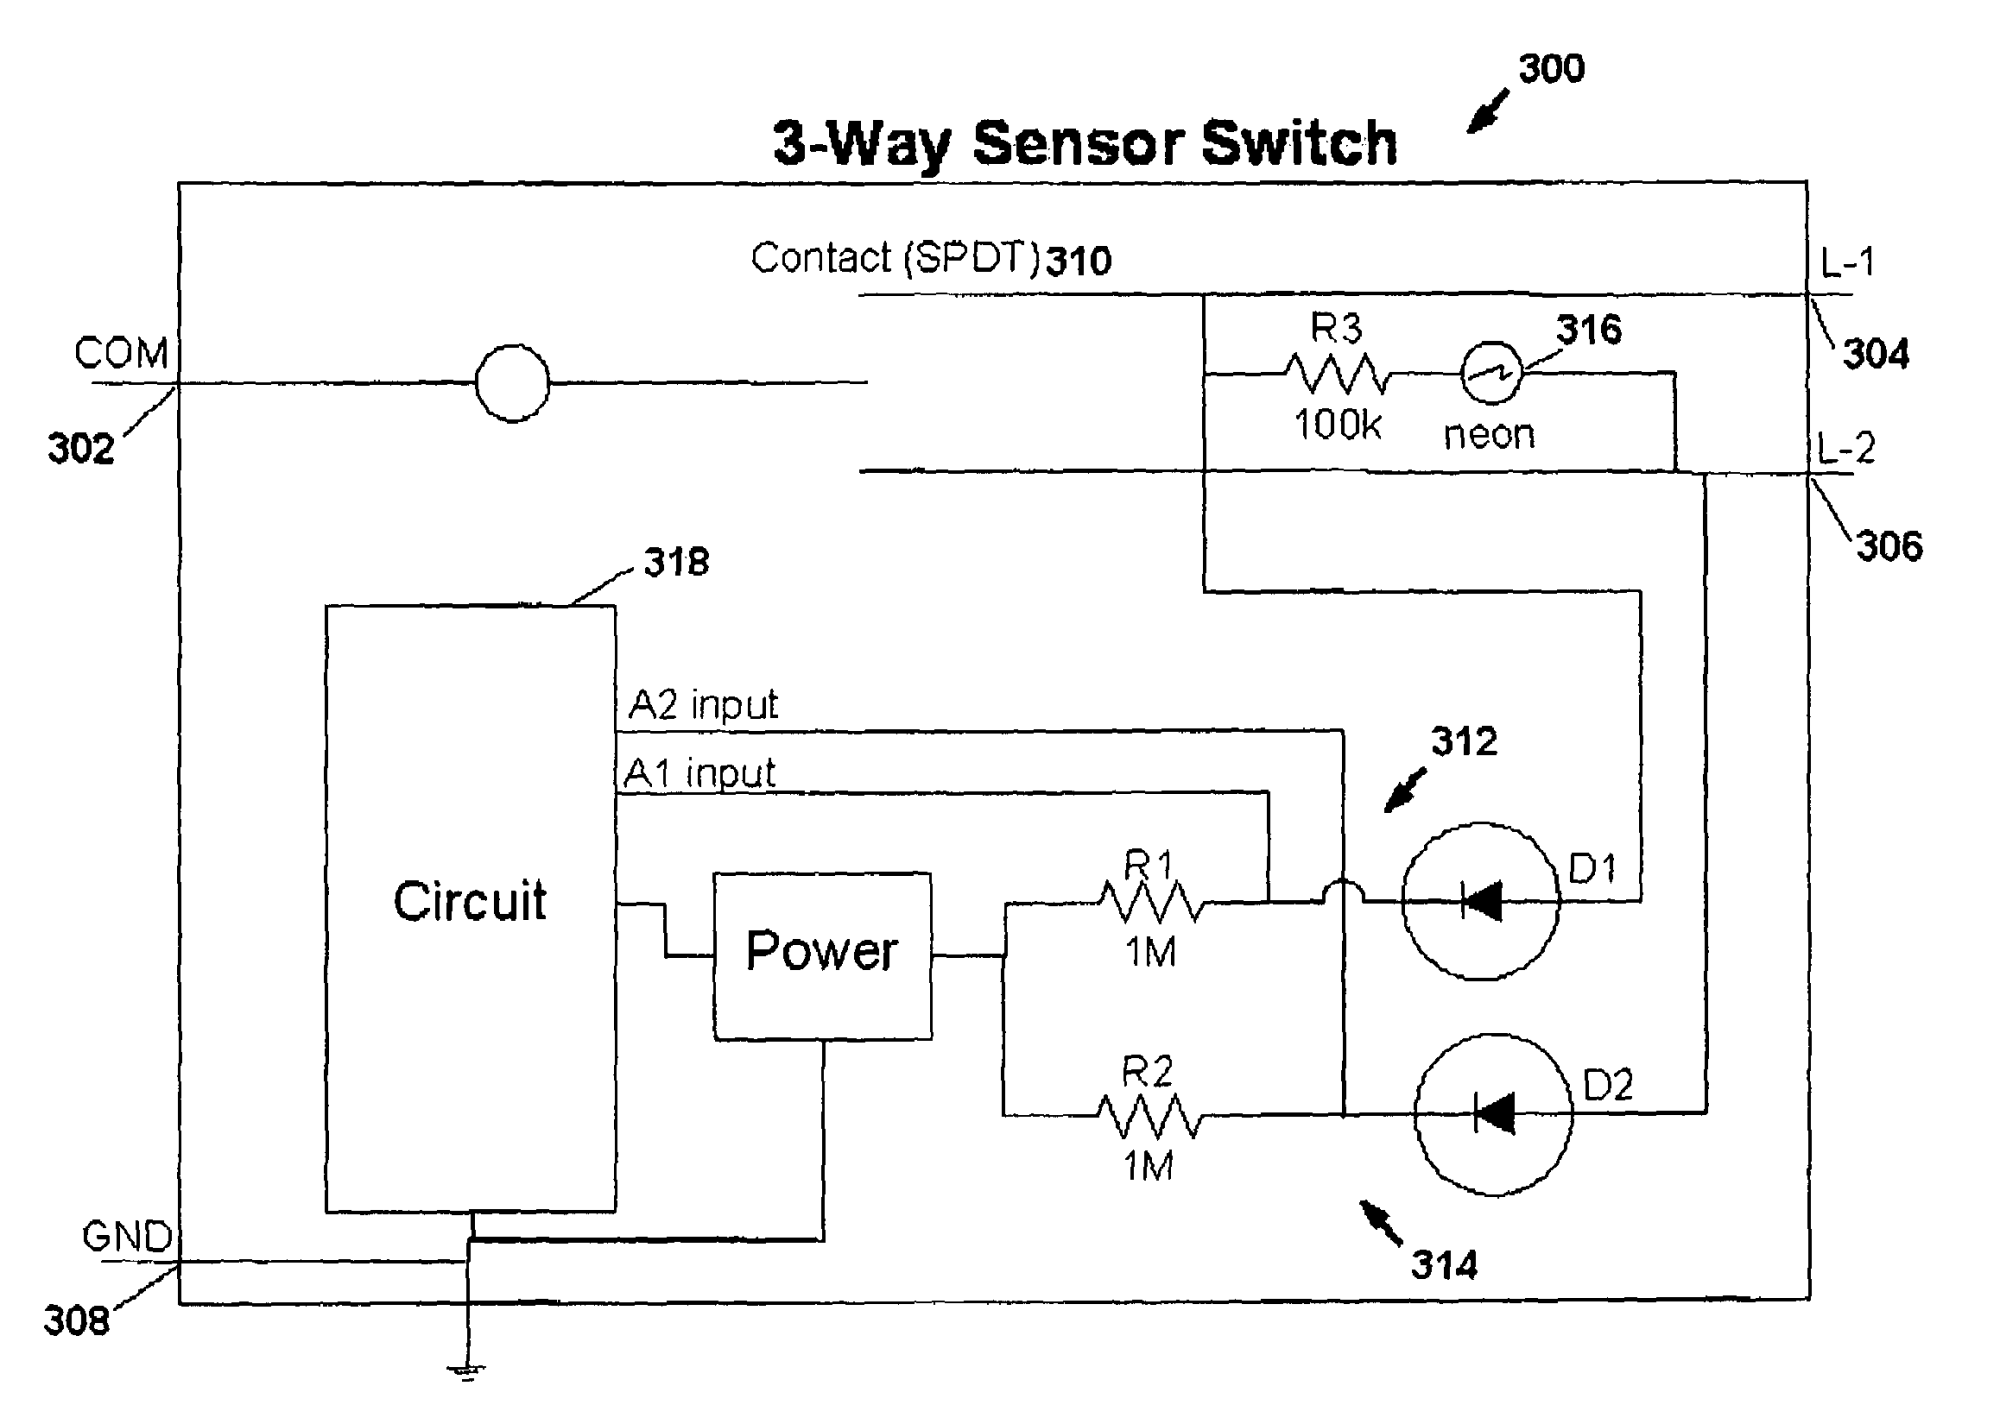 hight resolution of  us07791282 20100907 d00000 patent us7791282 motion sensor switch for 3 way light circuit at aneh